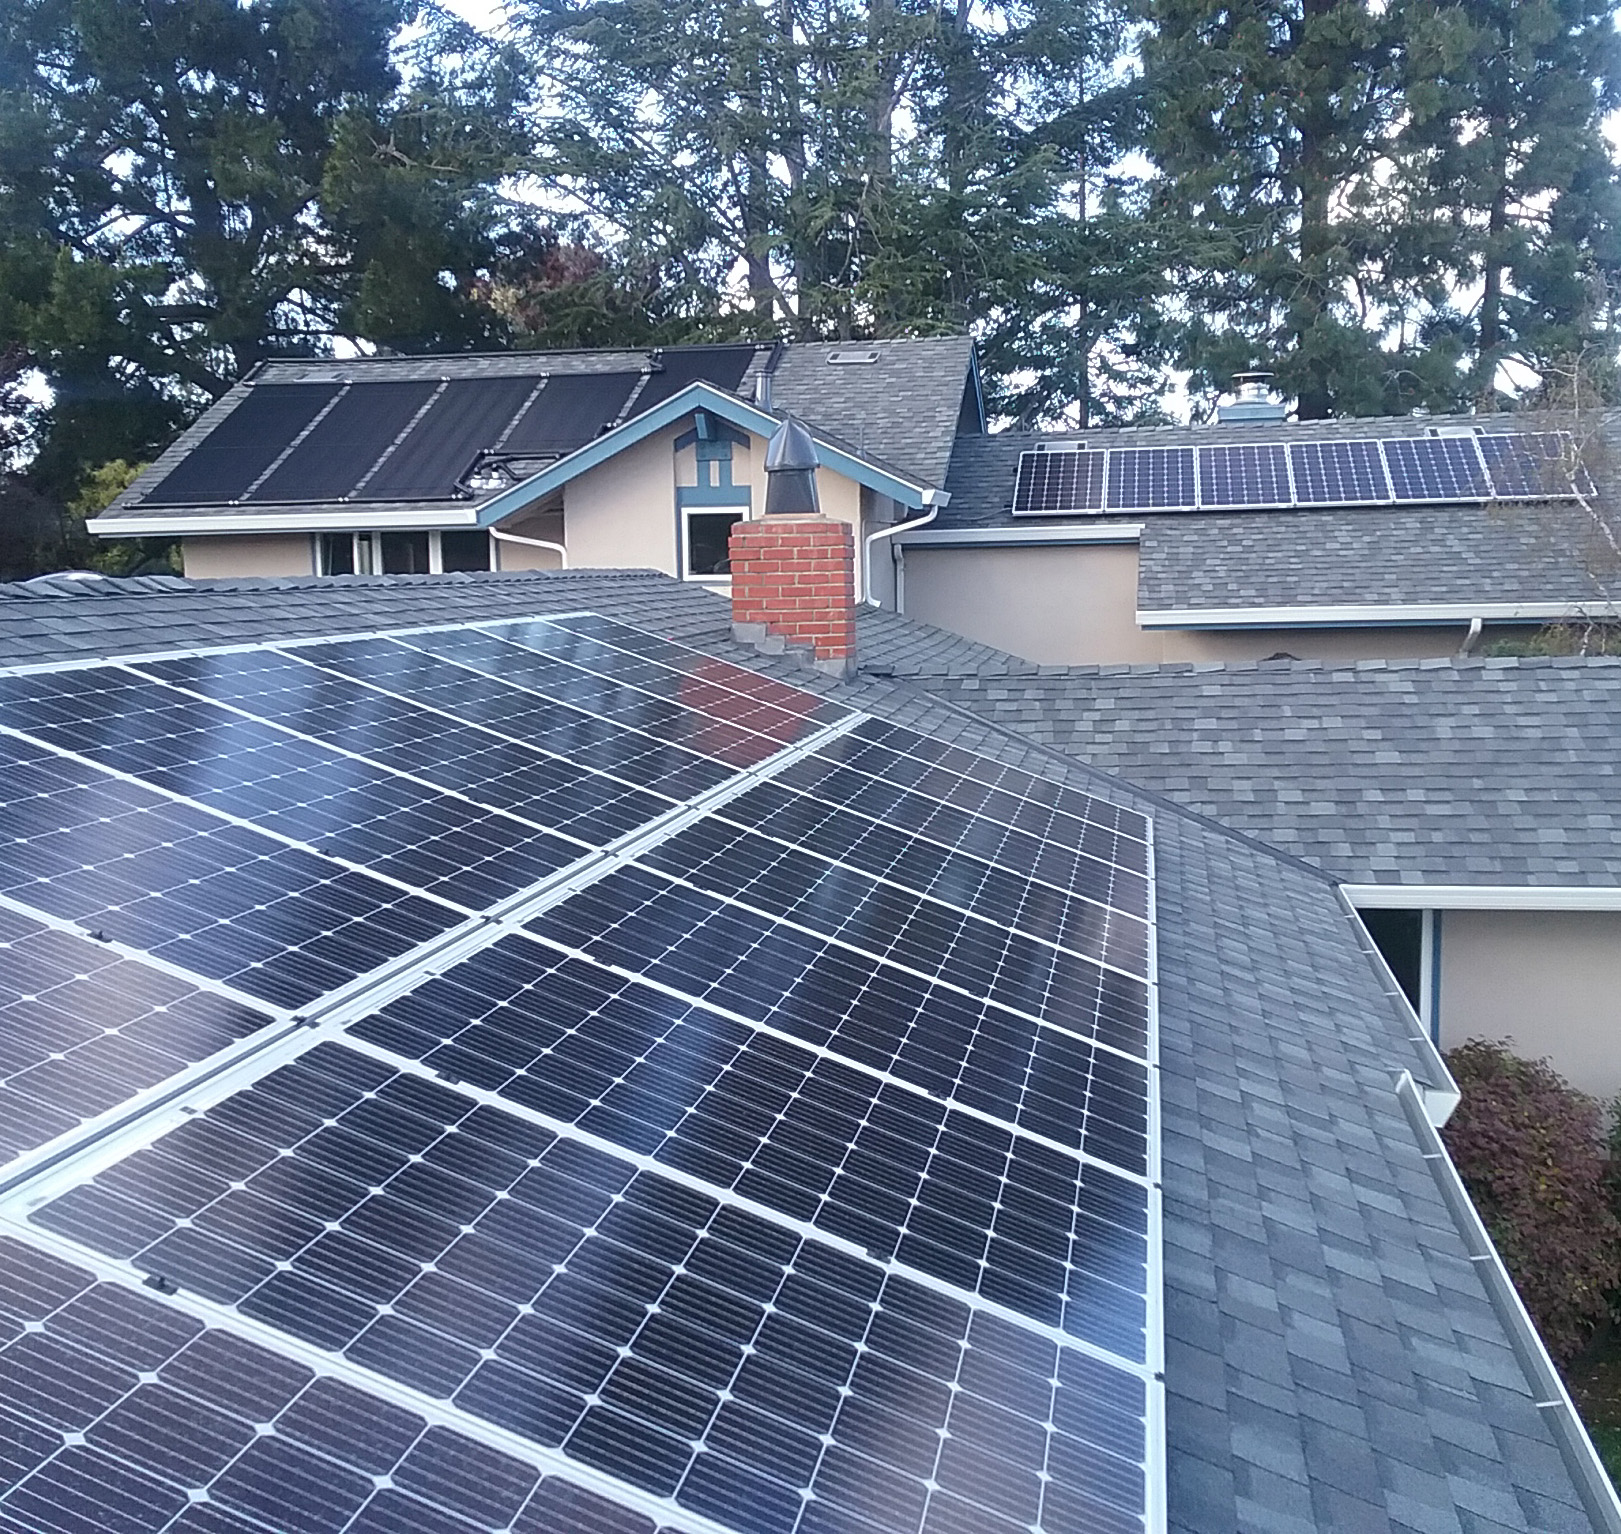 Roof Replacement Solar PV Installation Palo Alto, CA.jpg